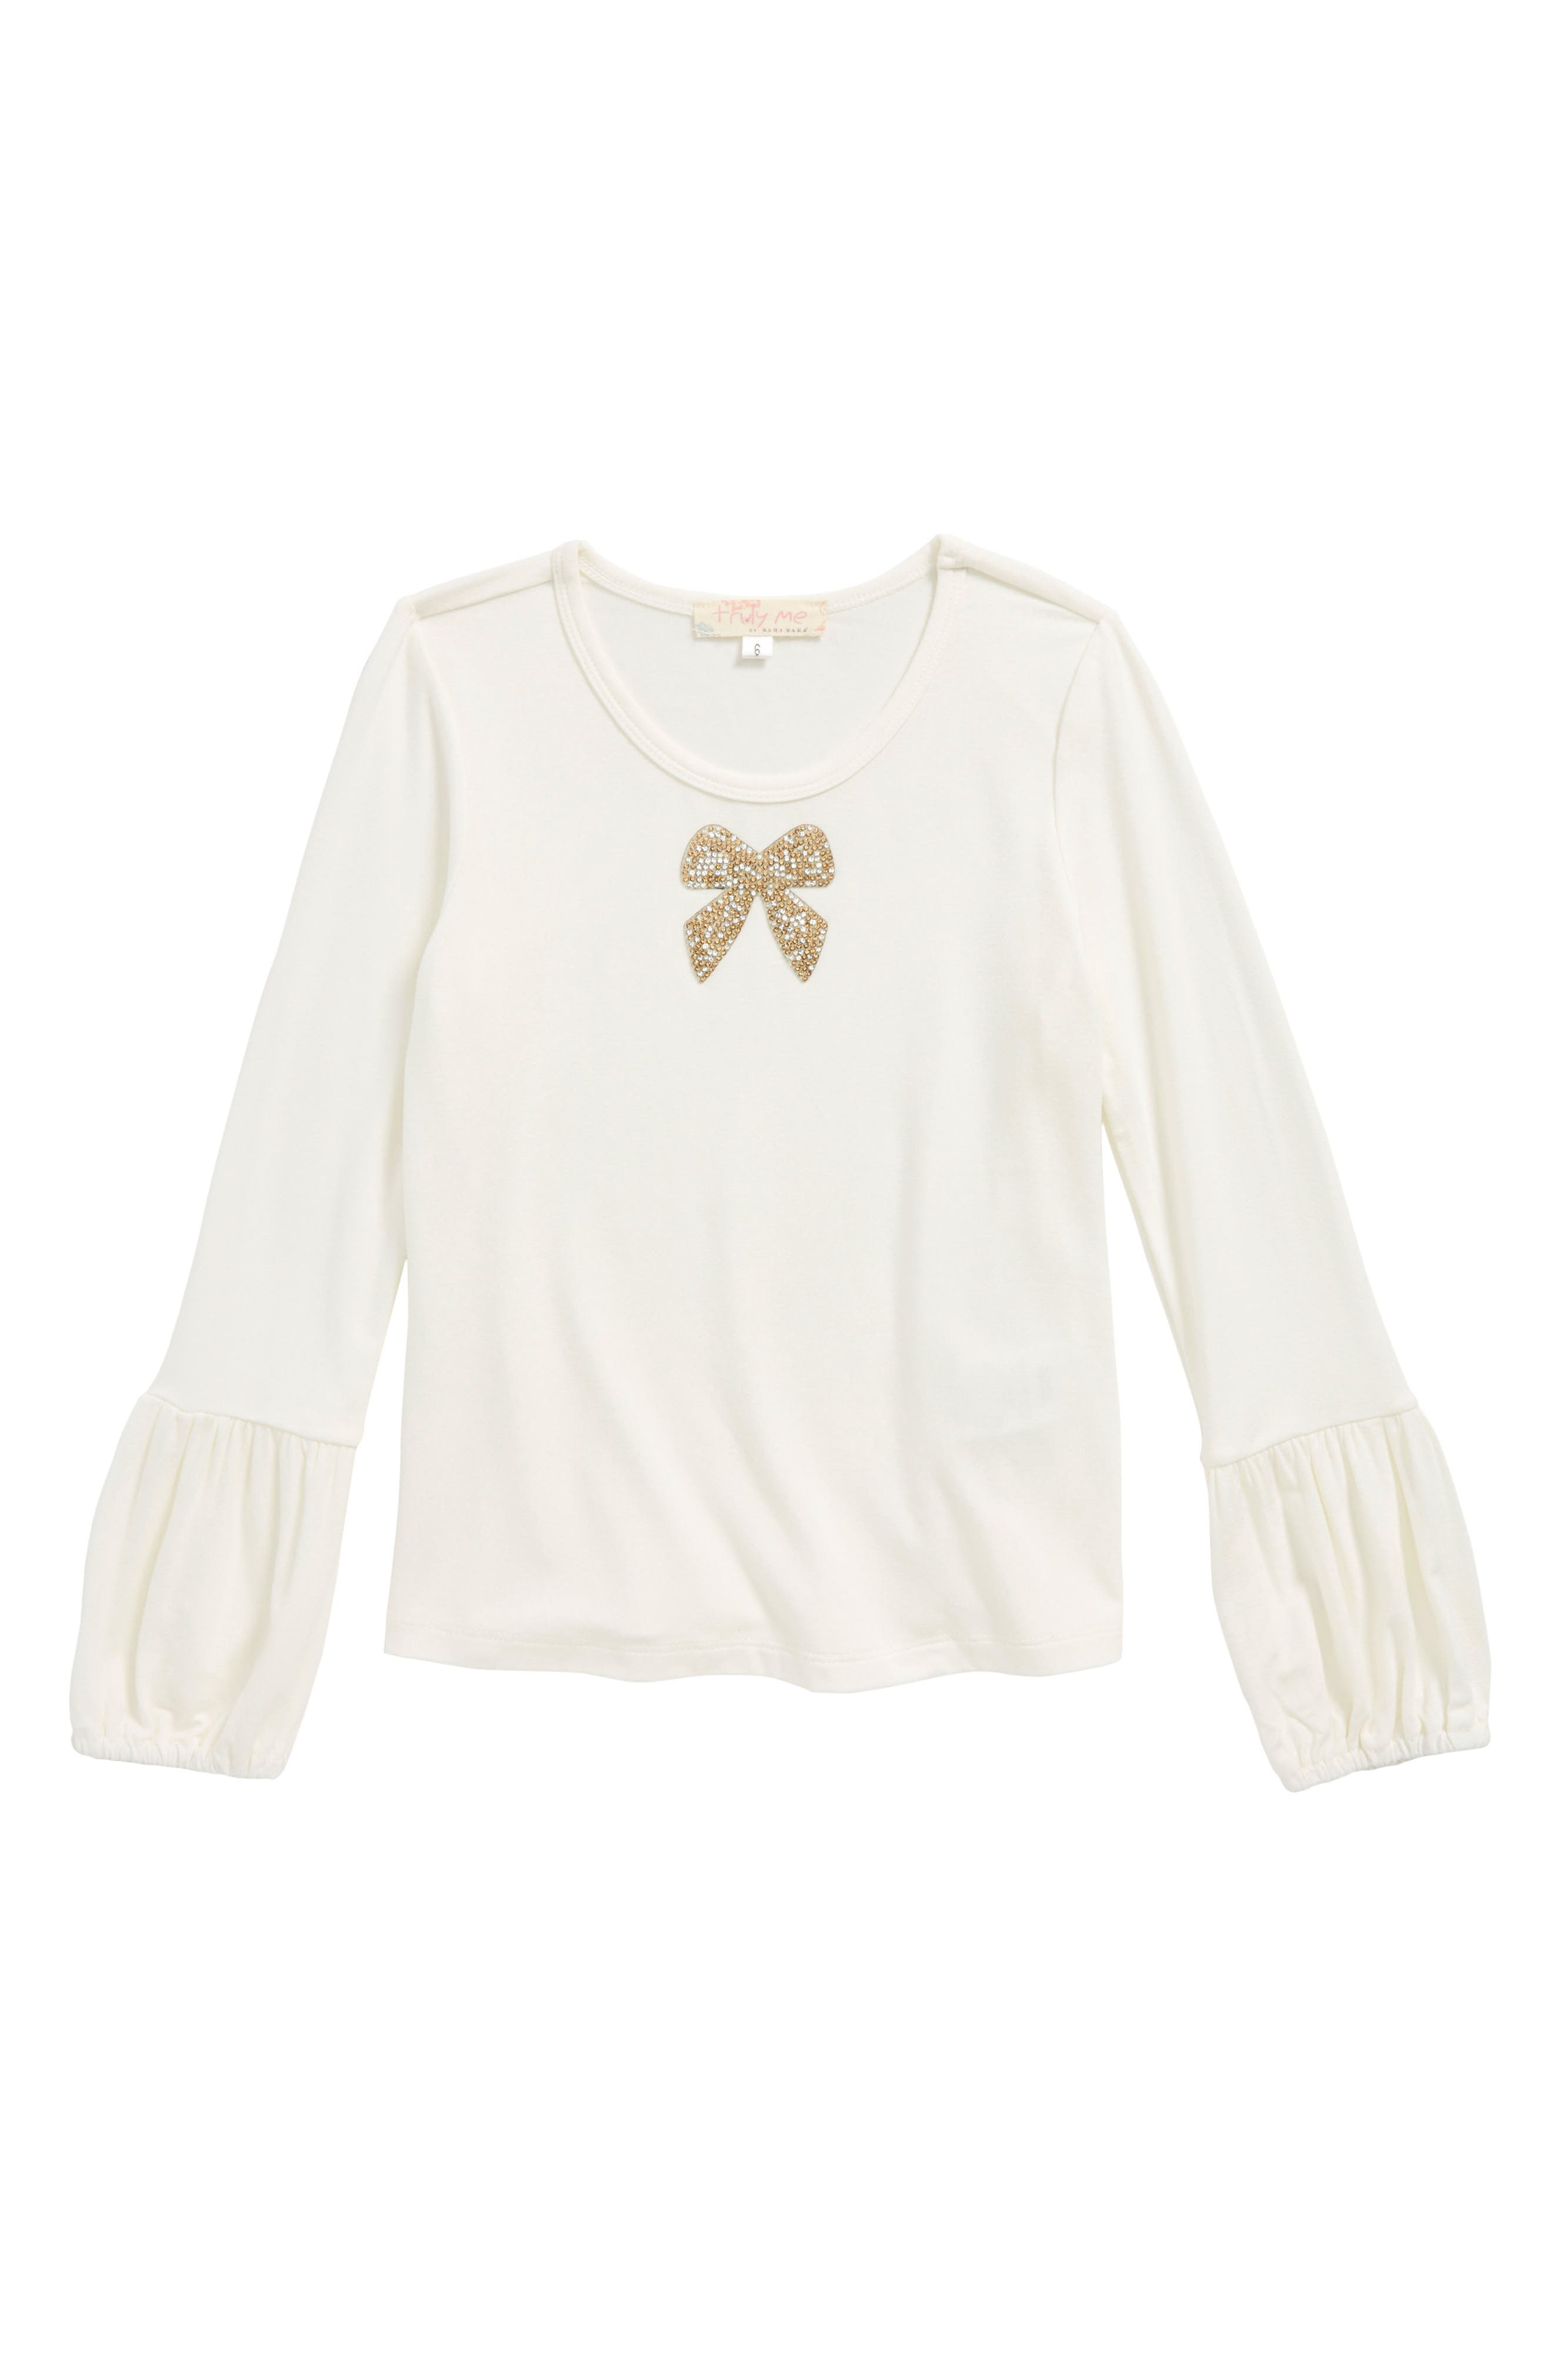 Main Image - Truly Me Crystal Bow Top (Toddler Girls & Little Girls)